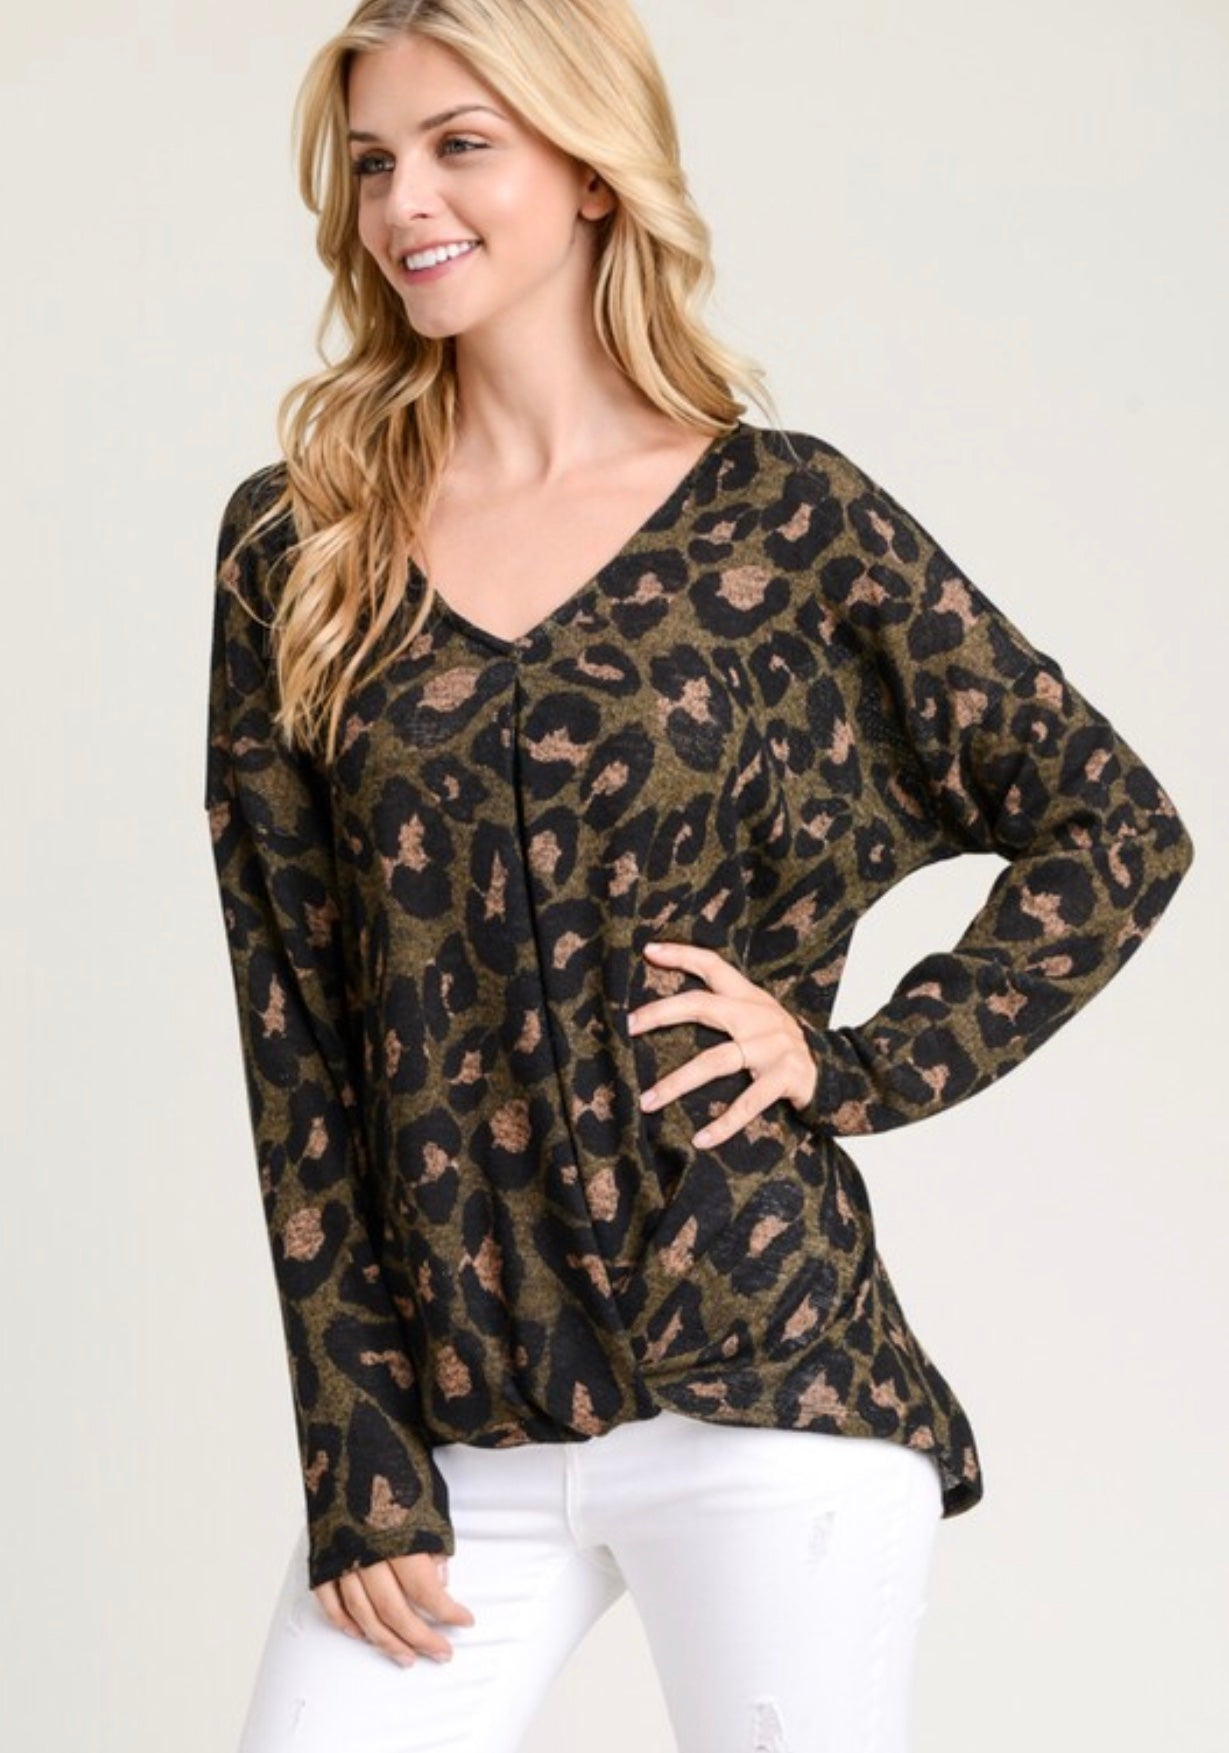 Long Sleeve Leopard Print Top with Front Knot